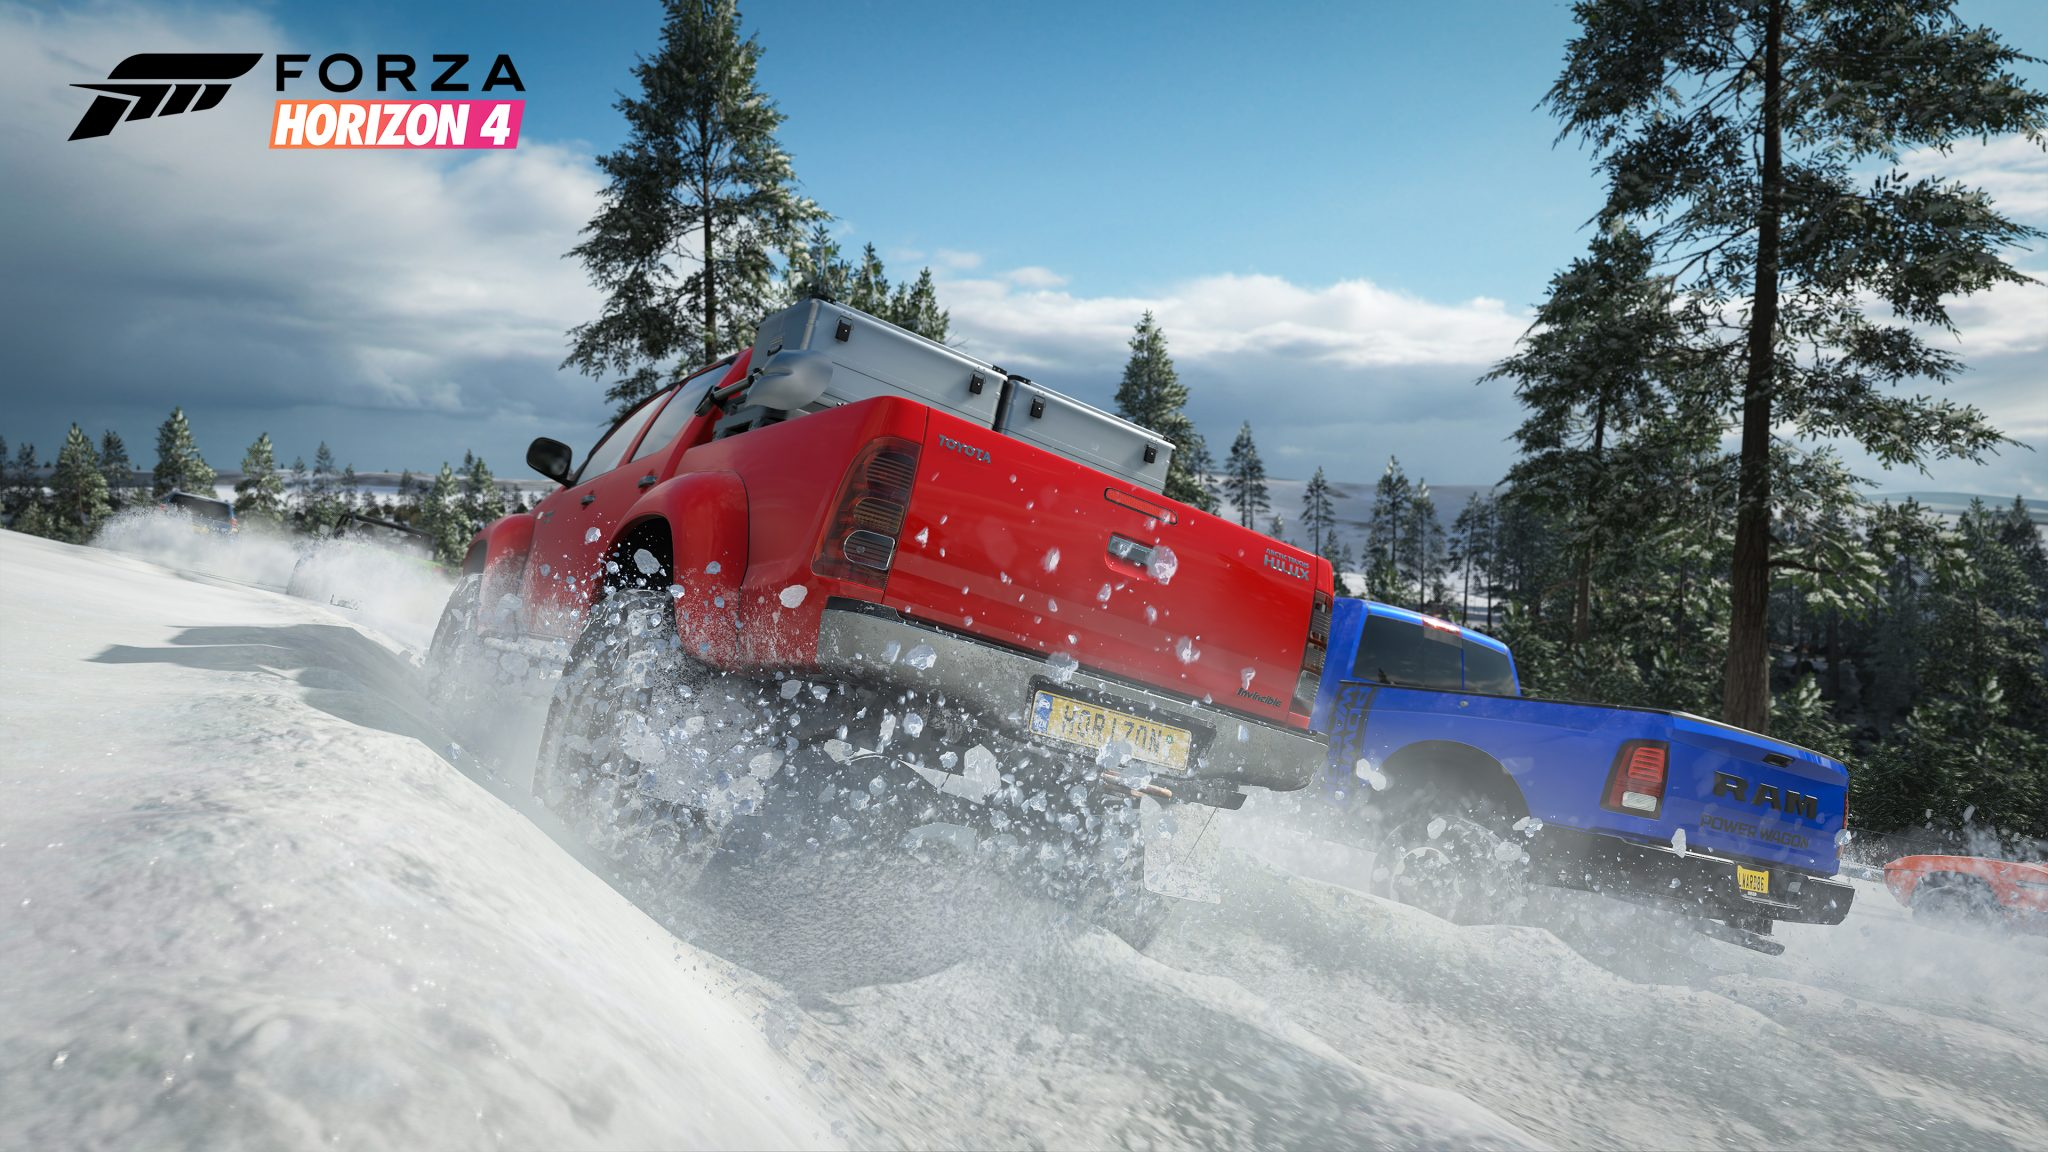 Forza Horizon 4 FH4 Xbox One X PC Ultimate Review Test Kritik Winter